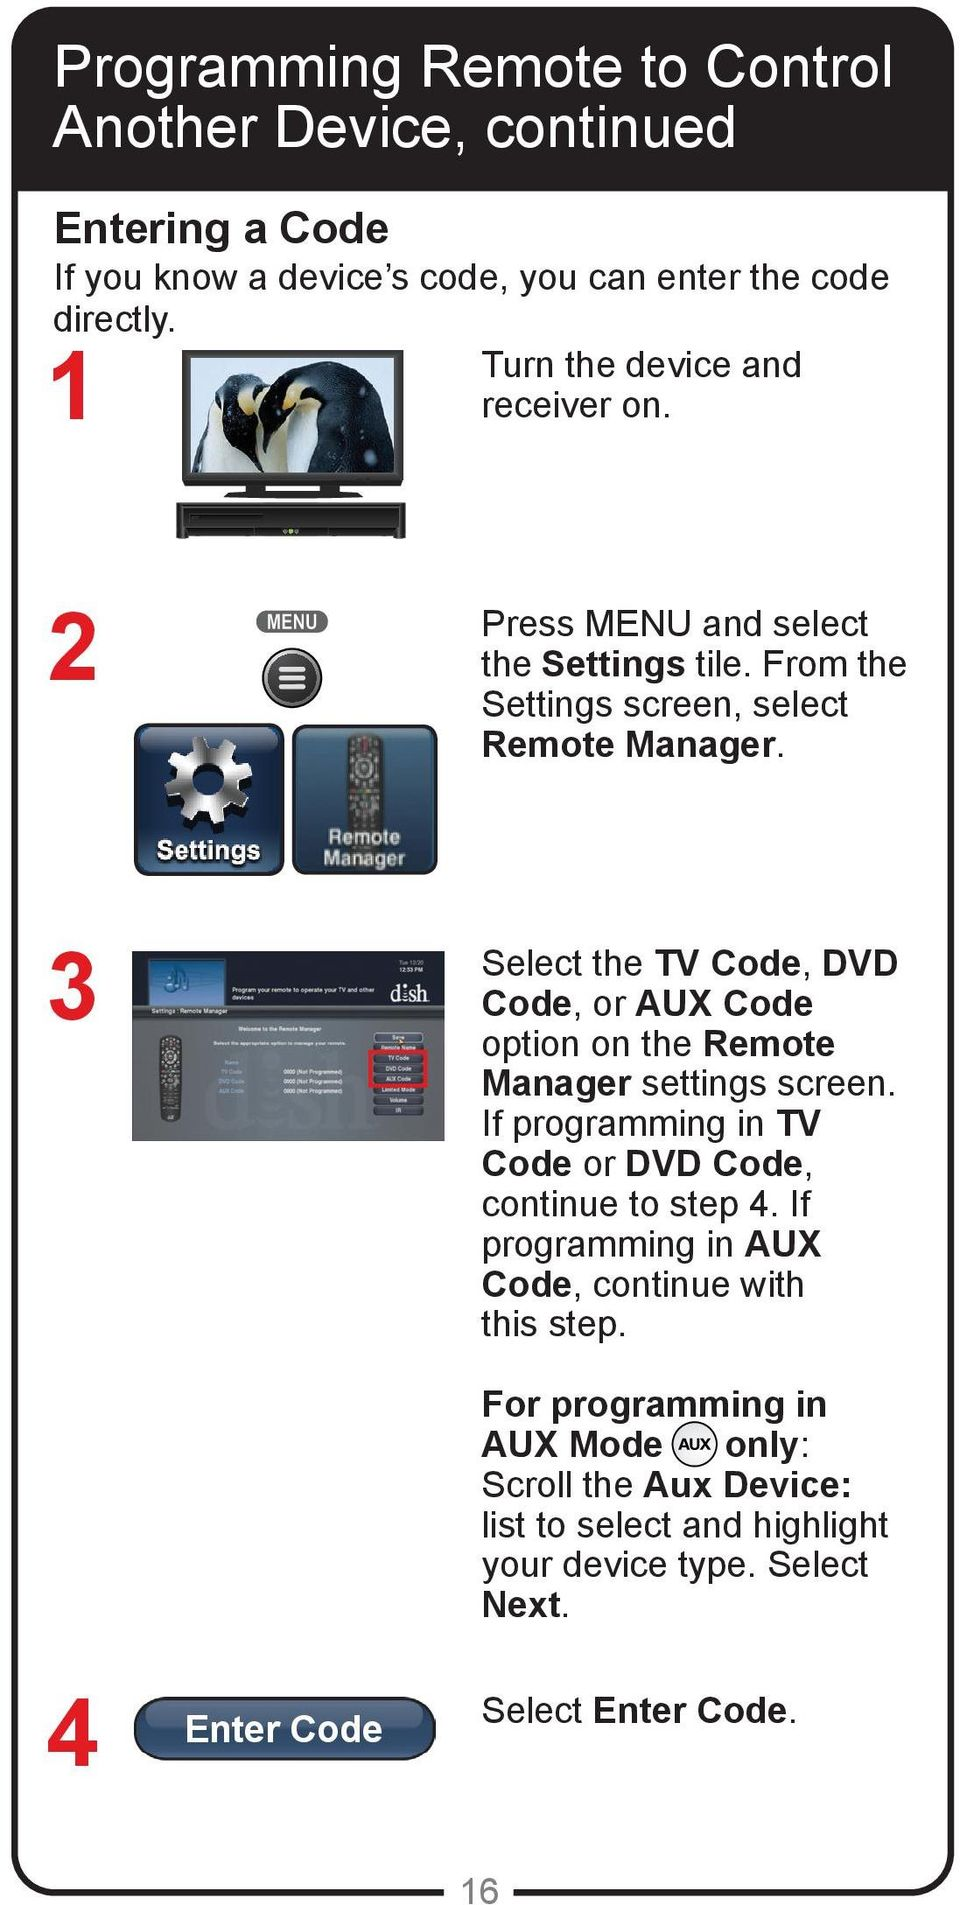 3 4 Enter Code Select the TV Code, DVD Code, or AUX Code option on the Remote Manager settings screen.